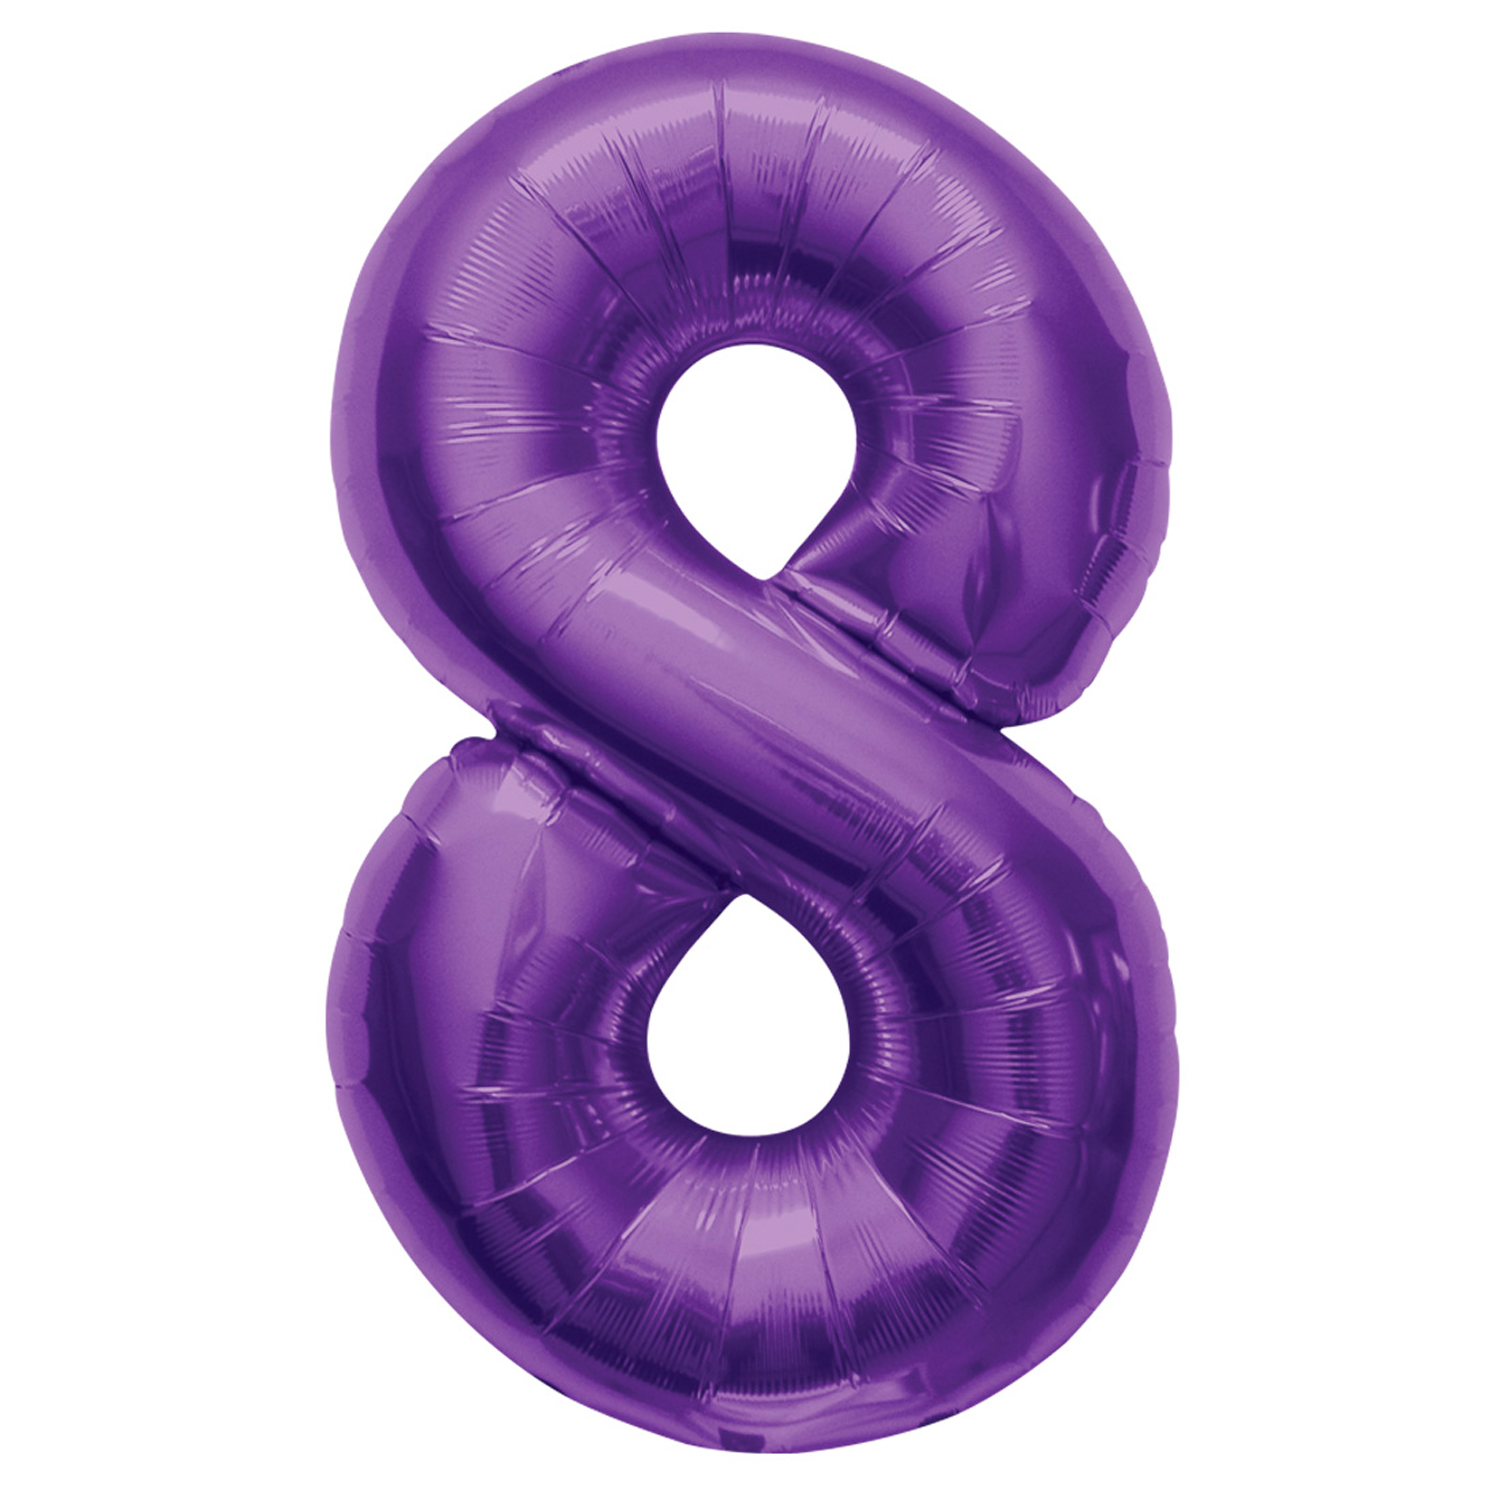 "Northstar Number 8 Eight Shape Solid Jumbo Helium 34"" Foil Balloon, Purple"